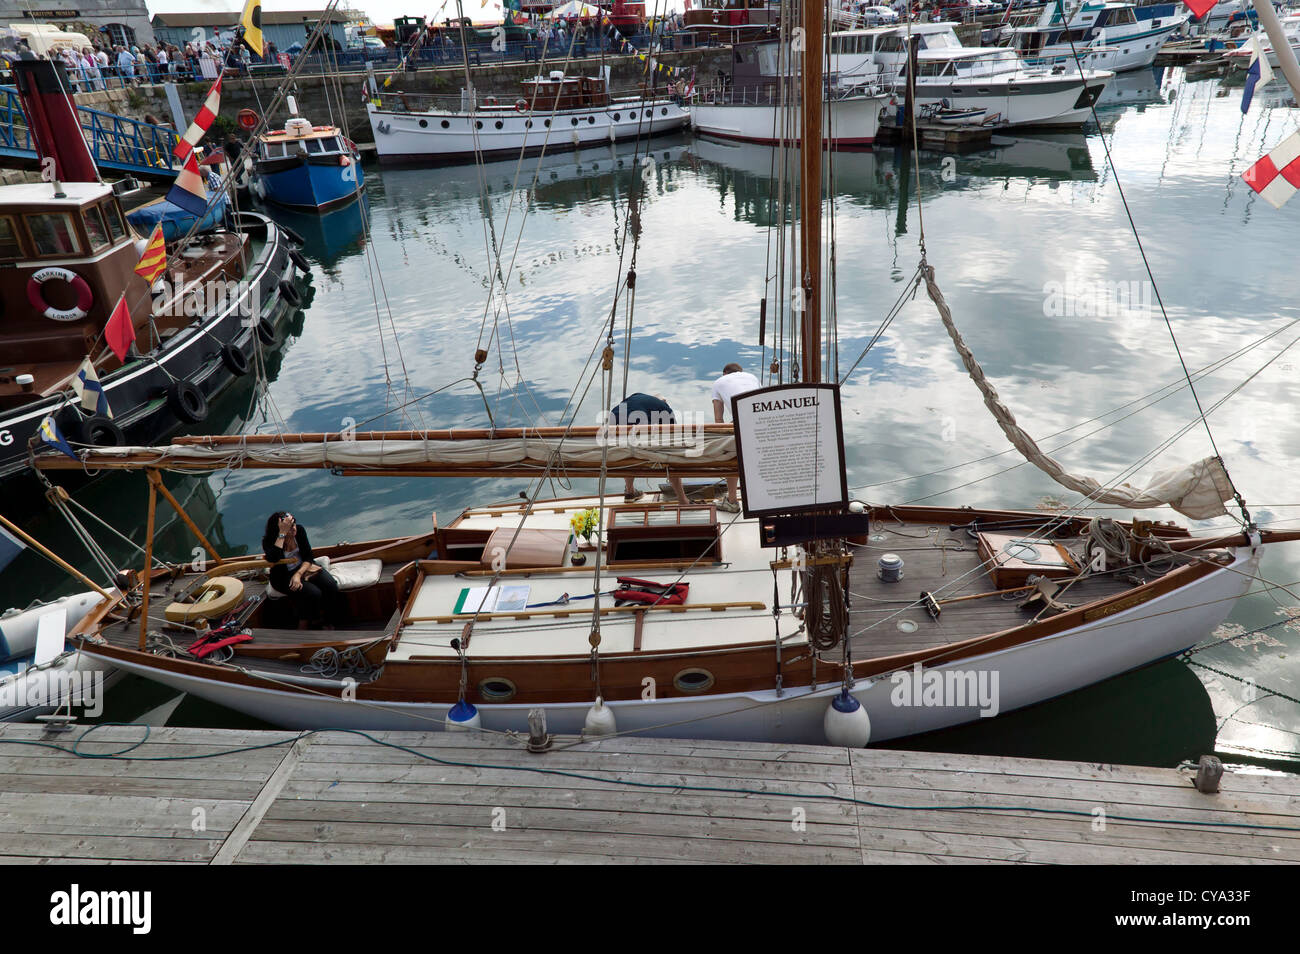 Emanuel, a Gaff Cutter Rigged Yacht, built by Andrew Anderson in 1928. - Stock Image